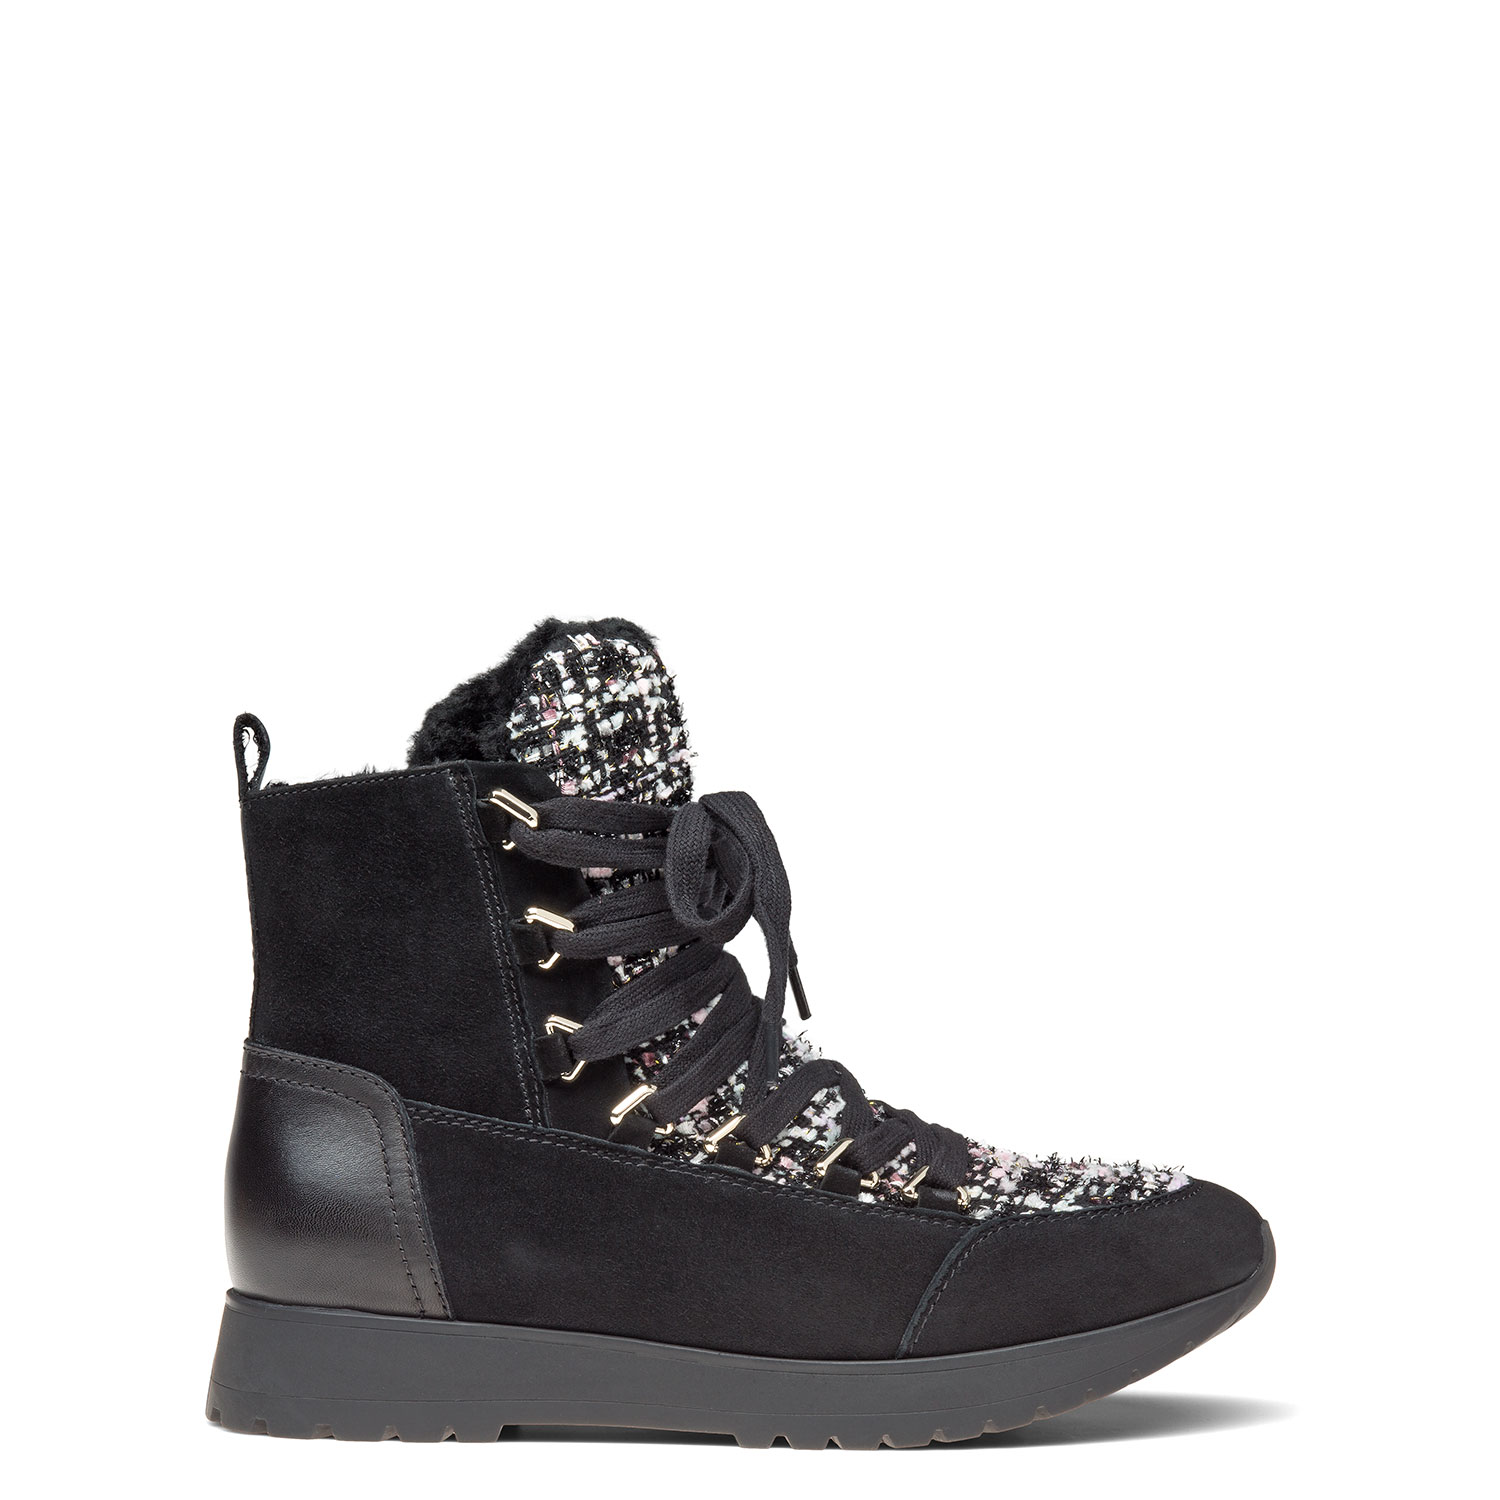 Women's fur-lined ankle boots CARLO PAZOLINI JH-ENR3-20